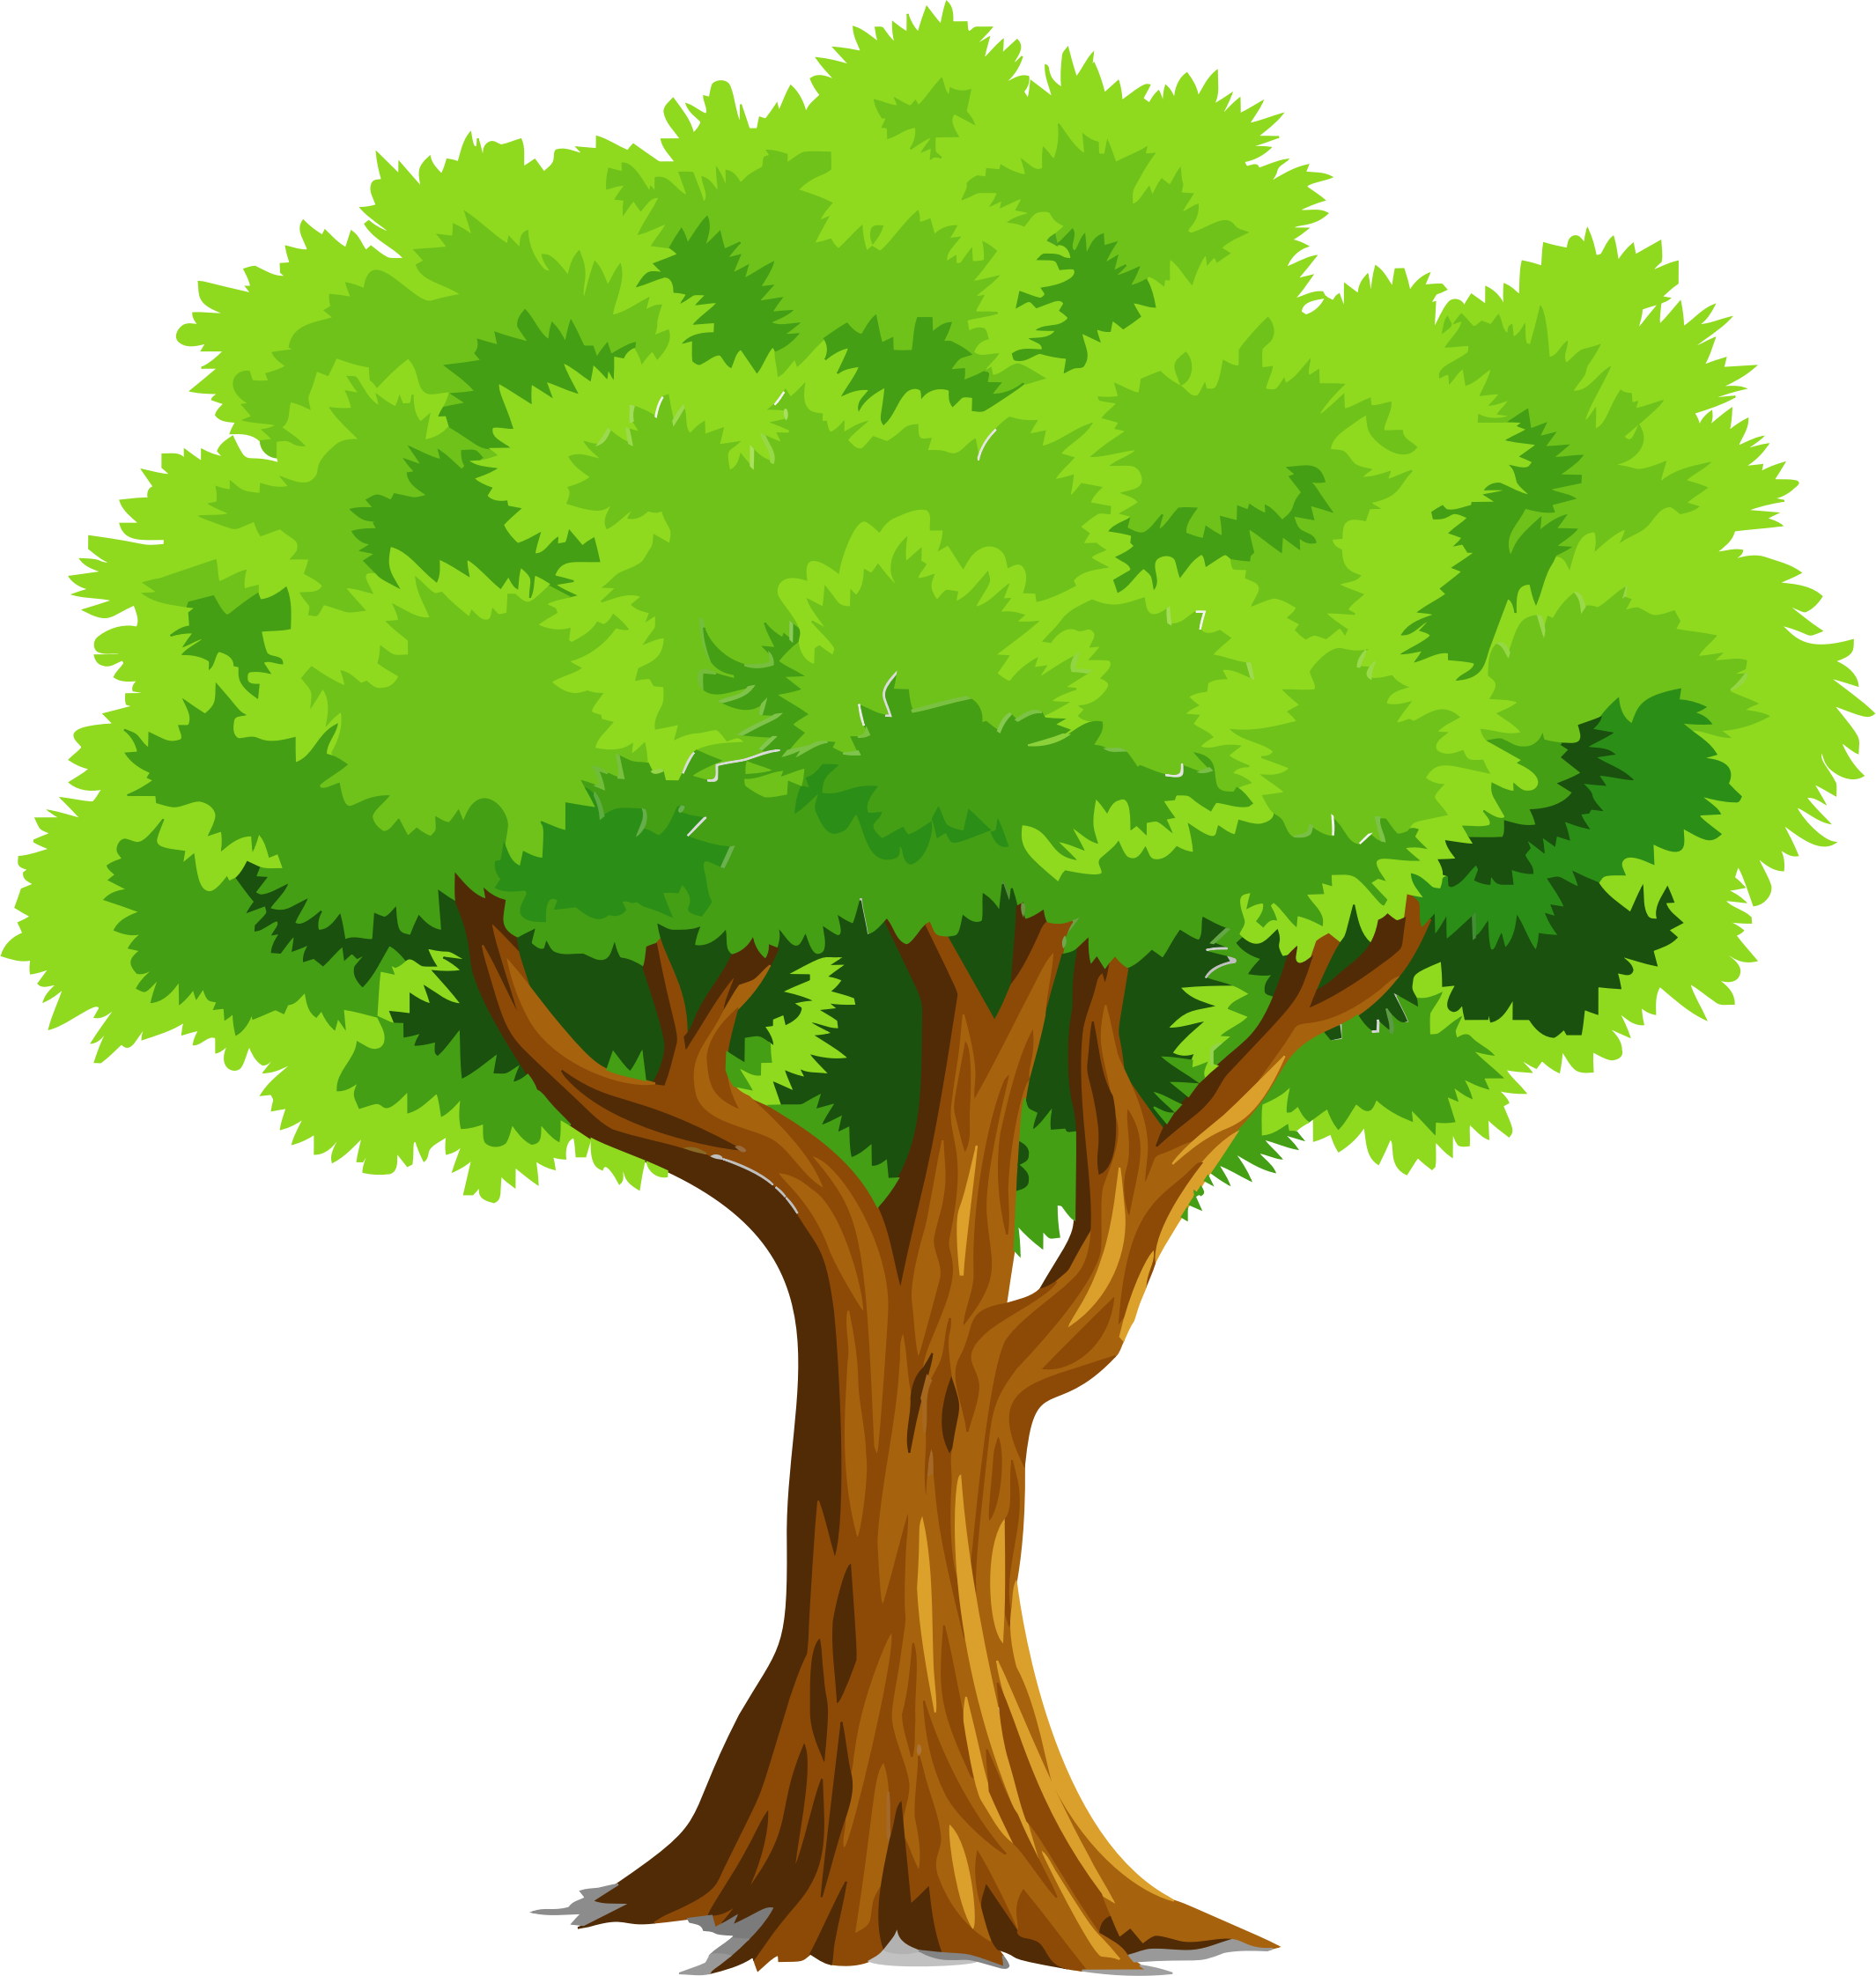 Nature clipart doodle. Colorful natural tree by